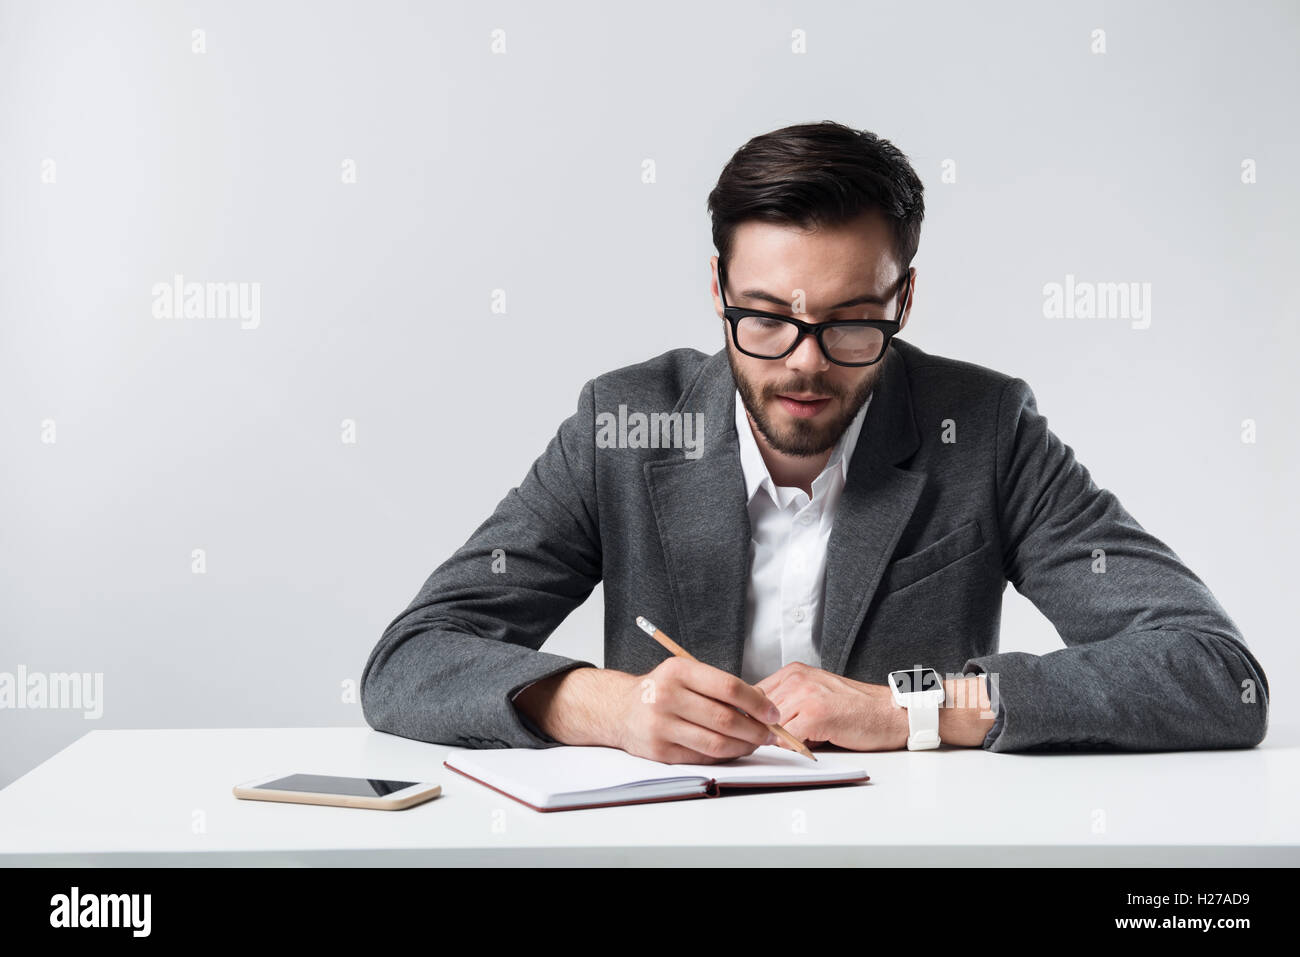 Serious bearded man making notes. Stock Photo